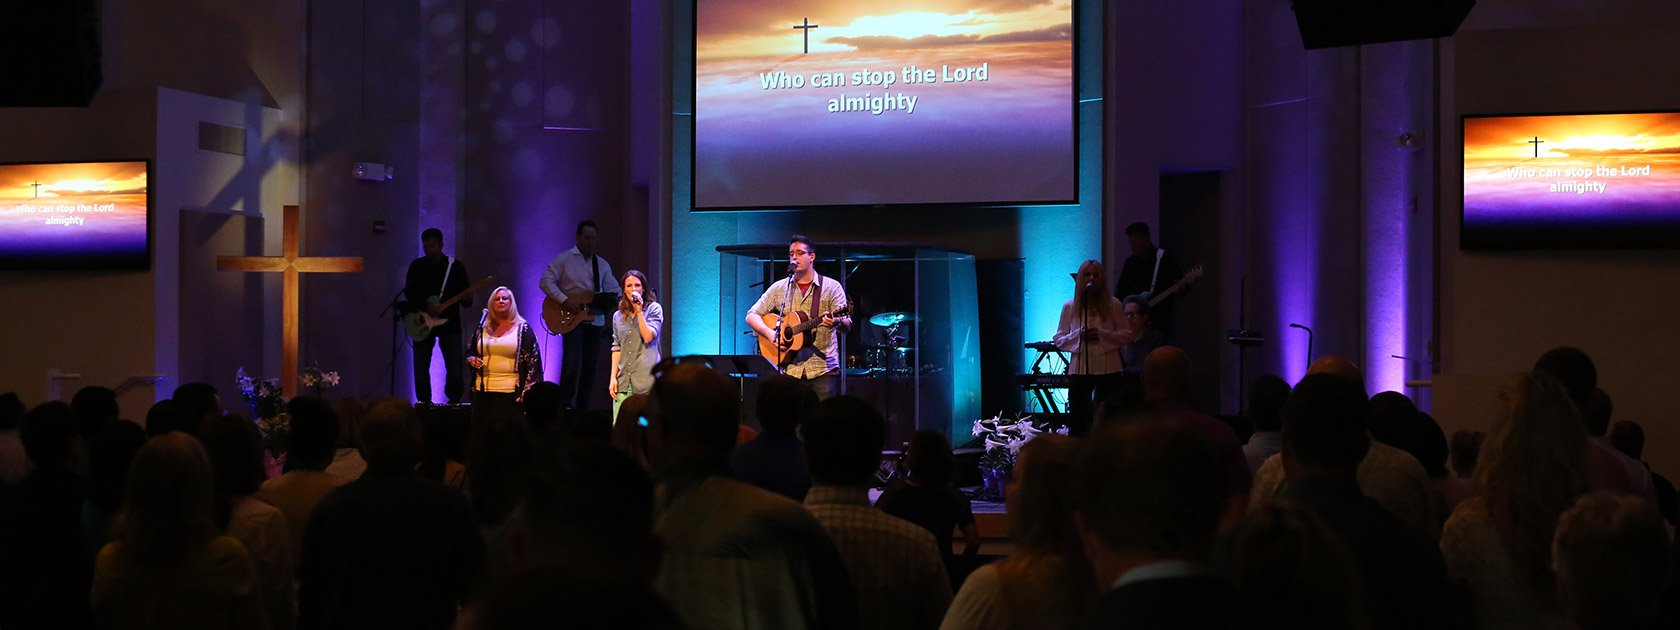 Worship at Canyon Hills Friends Church